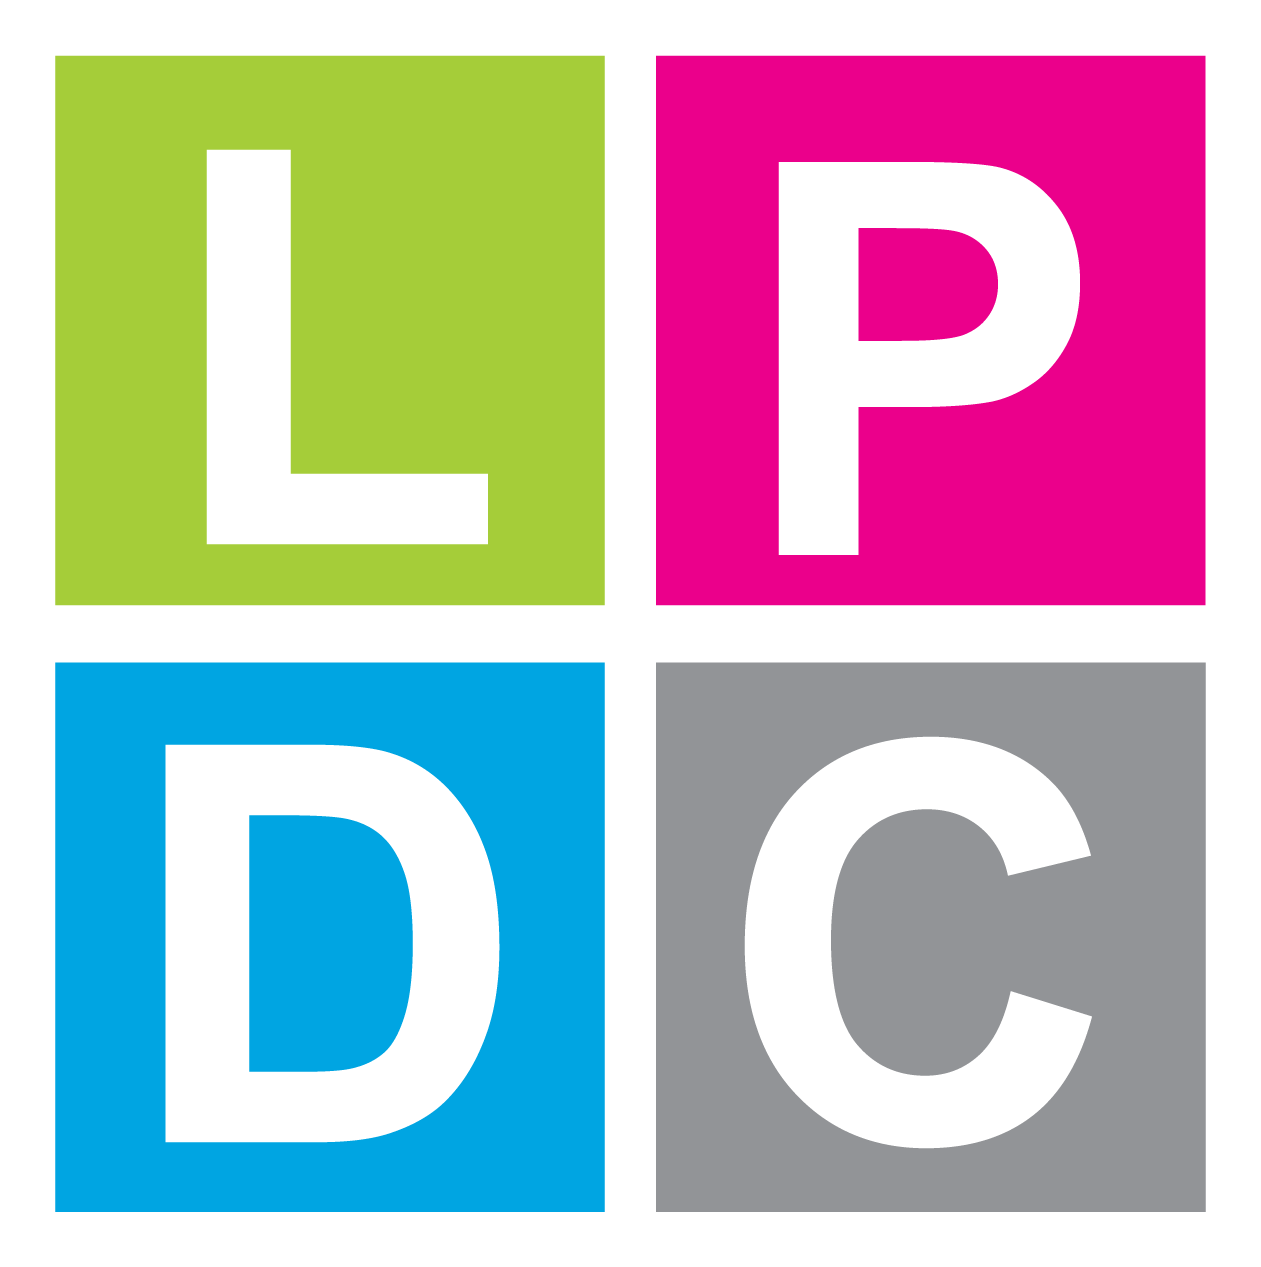 Learning and Personal Development Centre 進修與個人發展中心 宏恩基督教學院 LDPC